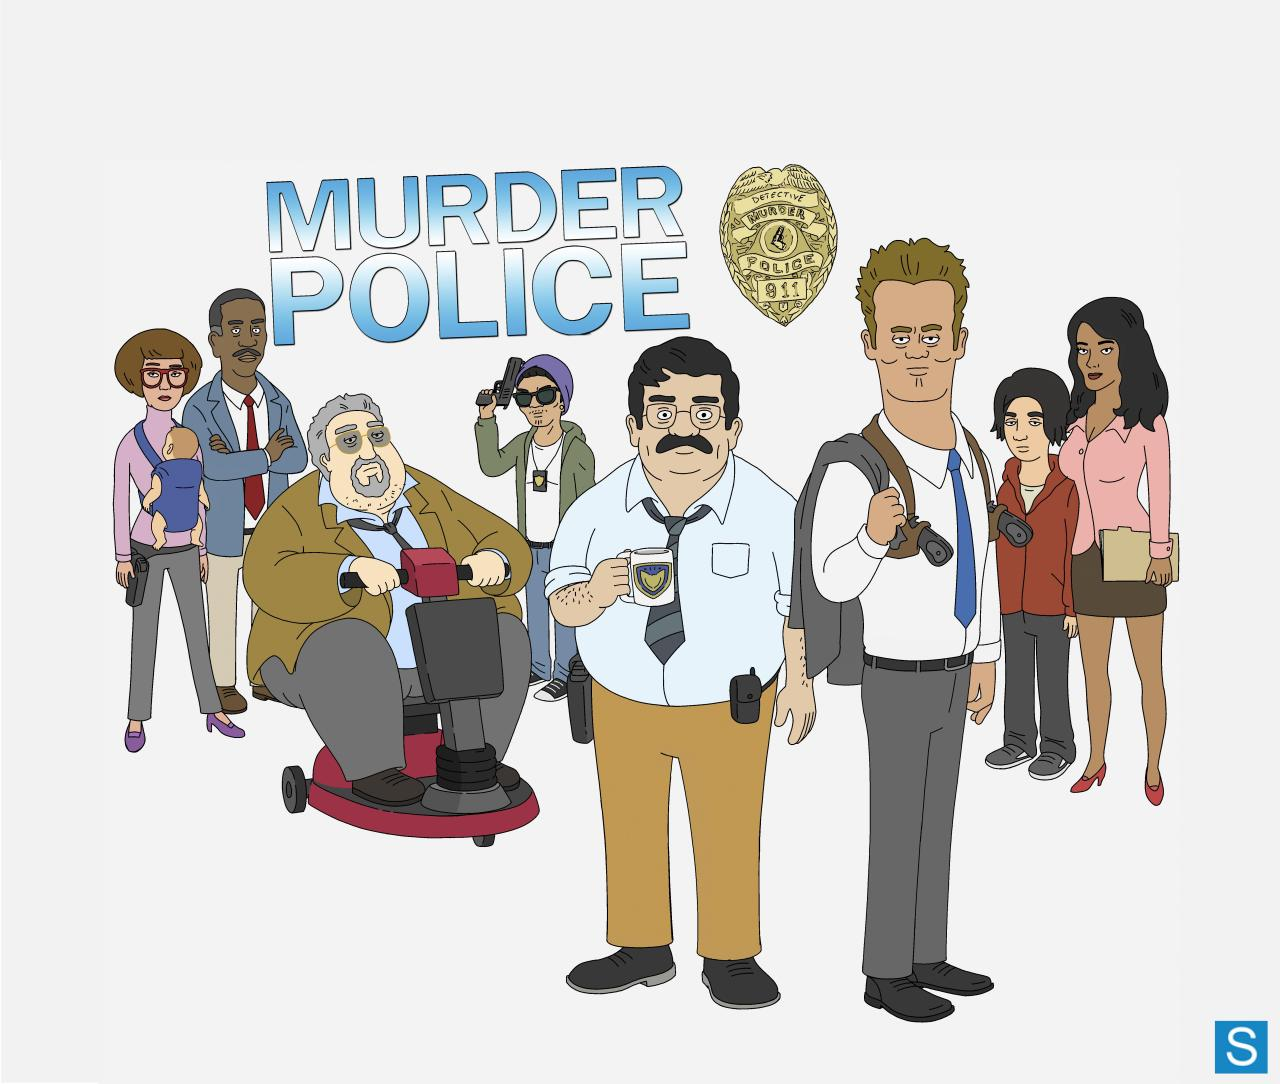 "MURDER POLICEMURDER POLICE is a new animated comedy series that expands the boundaries of the cop show genre as only animation can. From David A. Goodman (FAMILY GUY) and rising writer/animator/performer Jason Ruiz, the series follows a dedicated, but inept detective and his colleagues – some perverted, some corrupt, some just plain lazy – in a twisted city precinct. At the center of this maelstrom is MANUEL SANCHEZ (Ruiz), a neurotic and nerdy cop who aspires to be a good policeman, but his efforts to solve crimes are constantly put in jeopardy by his own clumsiness and the incompetence of his fellow detectives. Making matters worse, his egotistical, bribe-accepting partner, TOMMY MARGARETTI (Will Sasso, ""The Three Stooges,"" ""MADtv""), a tough, rule-breaking ""bad cop,"" can't interrogate a suspect without beating him up. The other detectives in the precinct include RANDALL HICKOX (Chi McBride, ""Golden Boy""), a cop with little interest in police work. He's lost a lot of partners, hates his job and often hands off his resume to crime scene witnesses. Randall's newest partner, JUSTICE (Jane Lynch, GLEE), is a self-righteous working mother whose child is lodged in a baby bjorn that is permanently secured around her chest. Undercover cop DONEL (Phil LaMarr, FAMILY GUY, ""Futurama"") is in so deep that he often does things of questionable legality. They all are supervised by the perpetually annoyed Captain JOHN RUSHOUR (Peter Atencio, ""Key and Peele""), a brusque, overweight old-school cop who expects failure and can't be bothered to even get out of his Rascal scooter. Manuel's ex-wife, ROSA (Justina Machado, ""Private Practice,"" ""Six Feet Under""), is a defense lawyer who remains irritated that Manuel always put his job first. But they remain bonded in the upbringing of their son, MARIO (Ruiz), a troubled teen who is less impressed with his father than he is by the criminals he catches. These cops often find themselves mildly interested in the most recent crime victim, but completely obsessed with who ""destroyed"" the bathroom. Nevertheless, where there's a mystery, Manuel somehow finds a way to solve it. MURDER POLICE is produced by Bento Box Animation (BOB'S BURGERS) and 20th Century Fox Television. The series is co-created by David A. Goodman (FAMILY GUY) and Jason Ruiz – one of the writers/animators discovered through the Fox Inkubation program. Goodman serves as executive producer and showrunner, and Ruiz is co-executive producer. PRODUCTION COMPANIES: 20th Century Fox Television, Bento Box AnimationCO-CREATORS: David A. Goodman, Jason RuizEXECUTIVE PRODUCER/SHOWRUNNER: David A. GoodmanCO-EXECUTIVE PRODUCER: Jason RuizVOICE CAST: Jason Ruiz as Manuel and Mario Sanchez, Will Sasso as Tommy Margaretti, Chi McBride as Randall Hickox, Jane Lynch as Justice, Phil LaMarr as Donel, Peter Atencio as John Rushour, Justina Machado as Rosa Sanchez  MURDER POLICE Facebook.com/MurderPolice @MurderPoliceFOX #murderpolice"